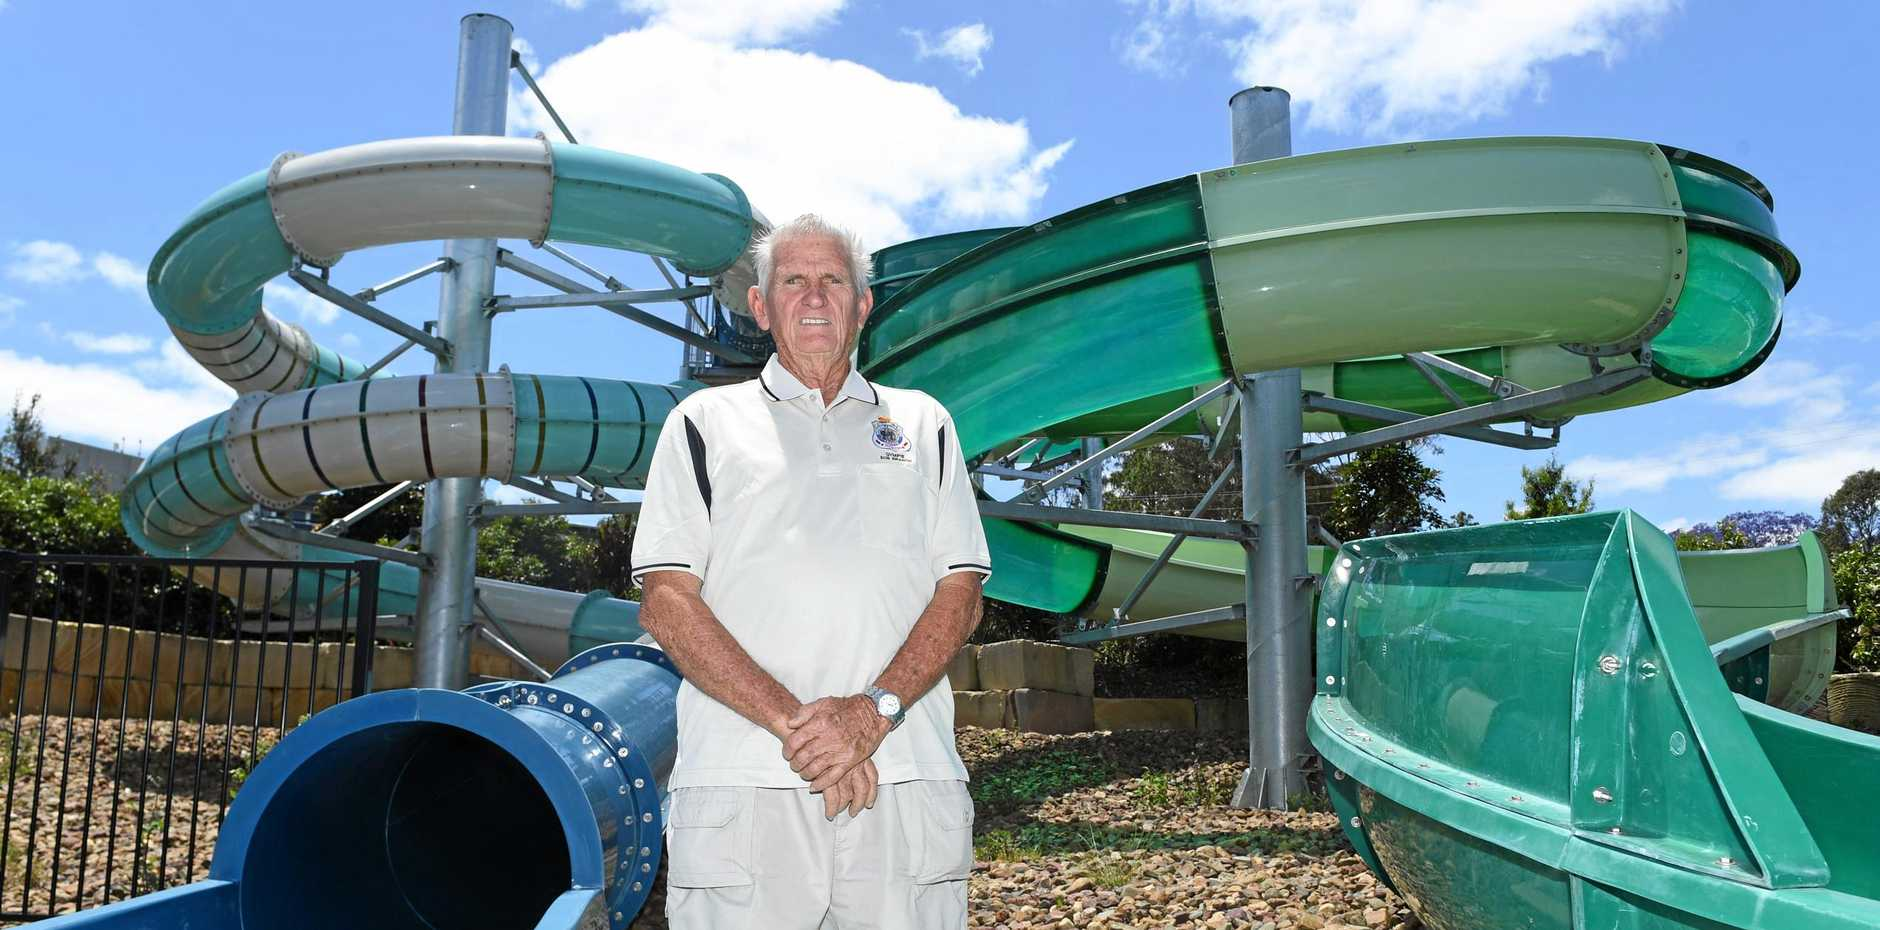 SPLASH DOWN: Jim Gordon will splash down the Gympie ARC waterslides 75 times (and do 75 push-ups) a day before his 75th birthday this weekend.